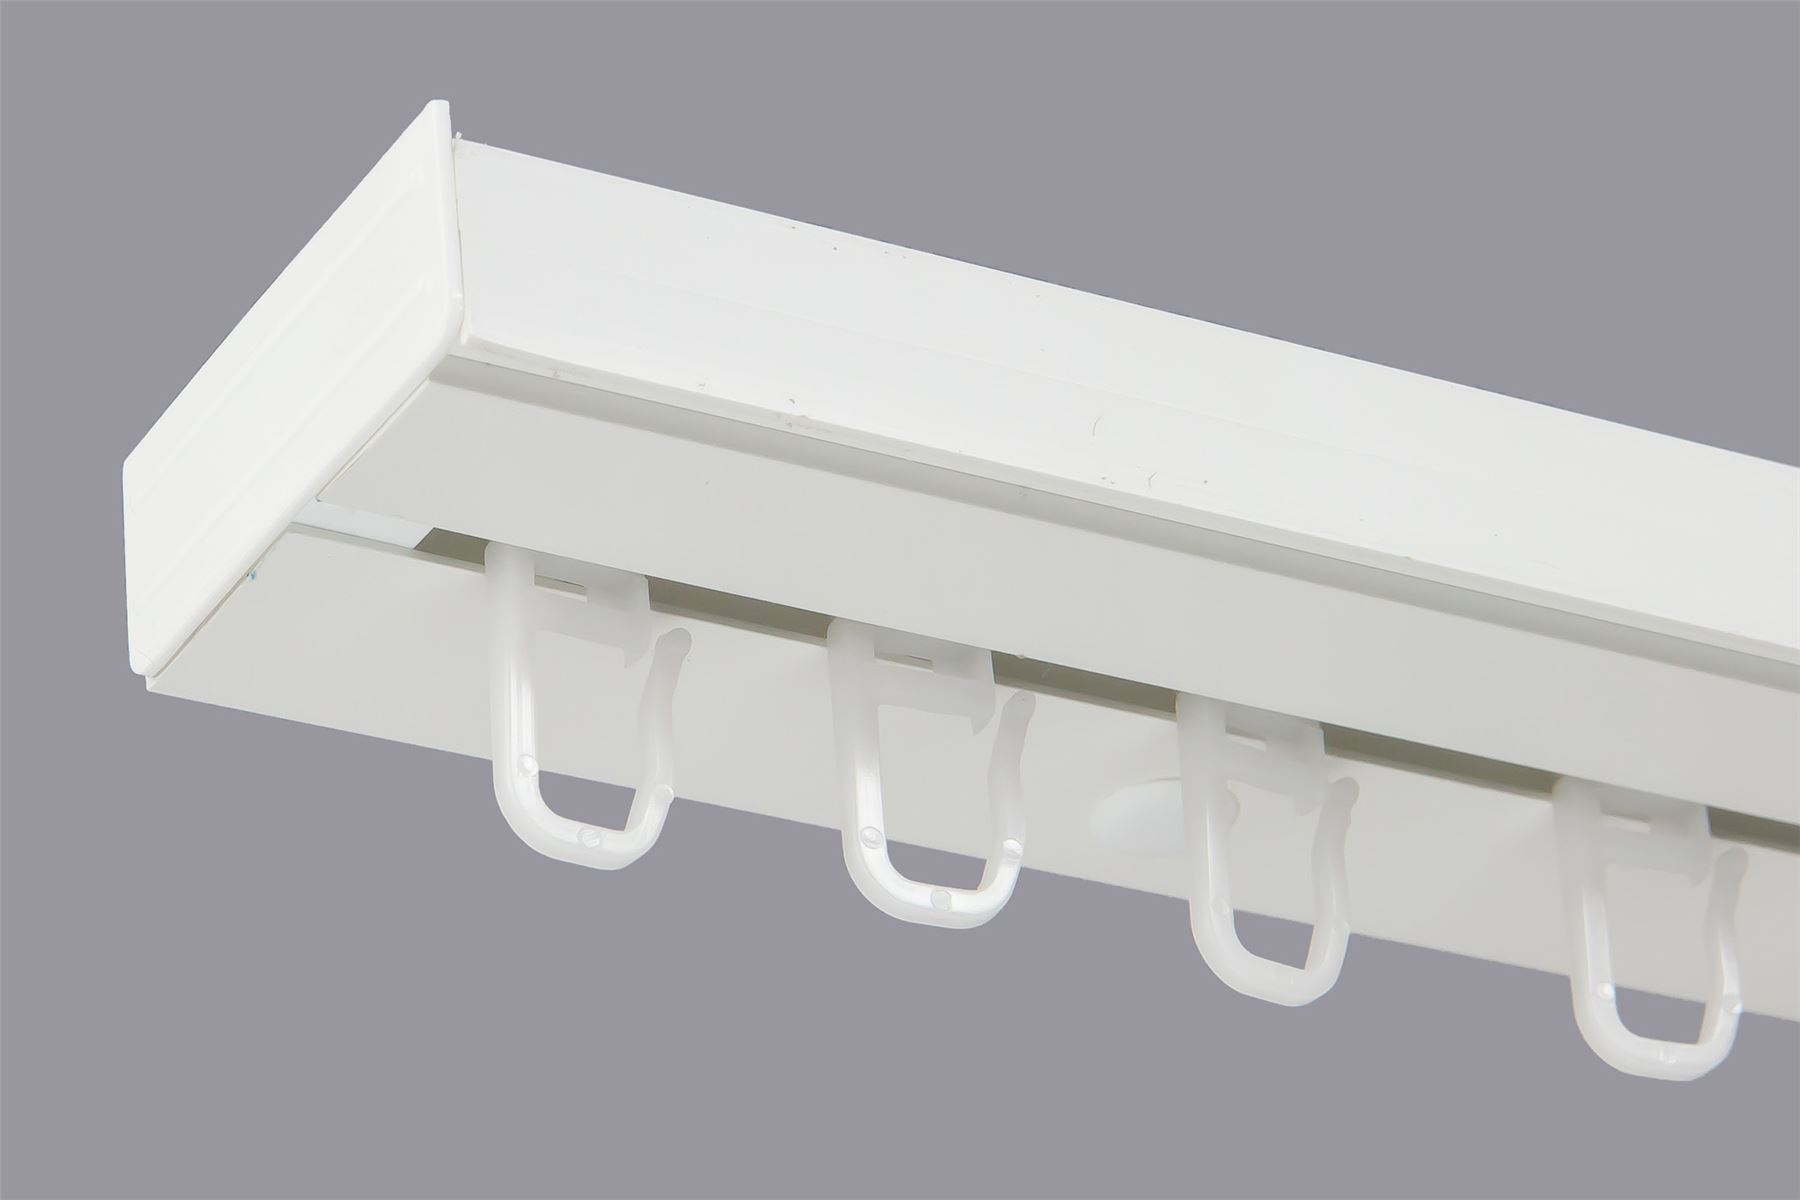 Binari Per Tende A Soffitto : Single or double curtain rail track pcv ceiling set with hooks or